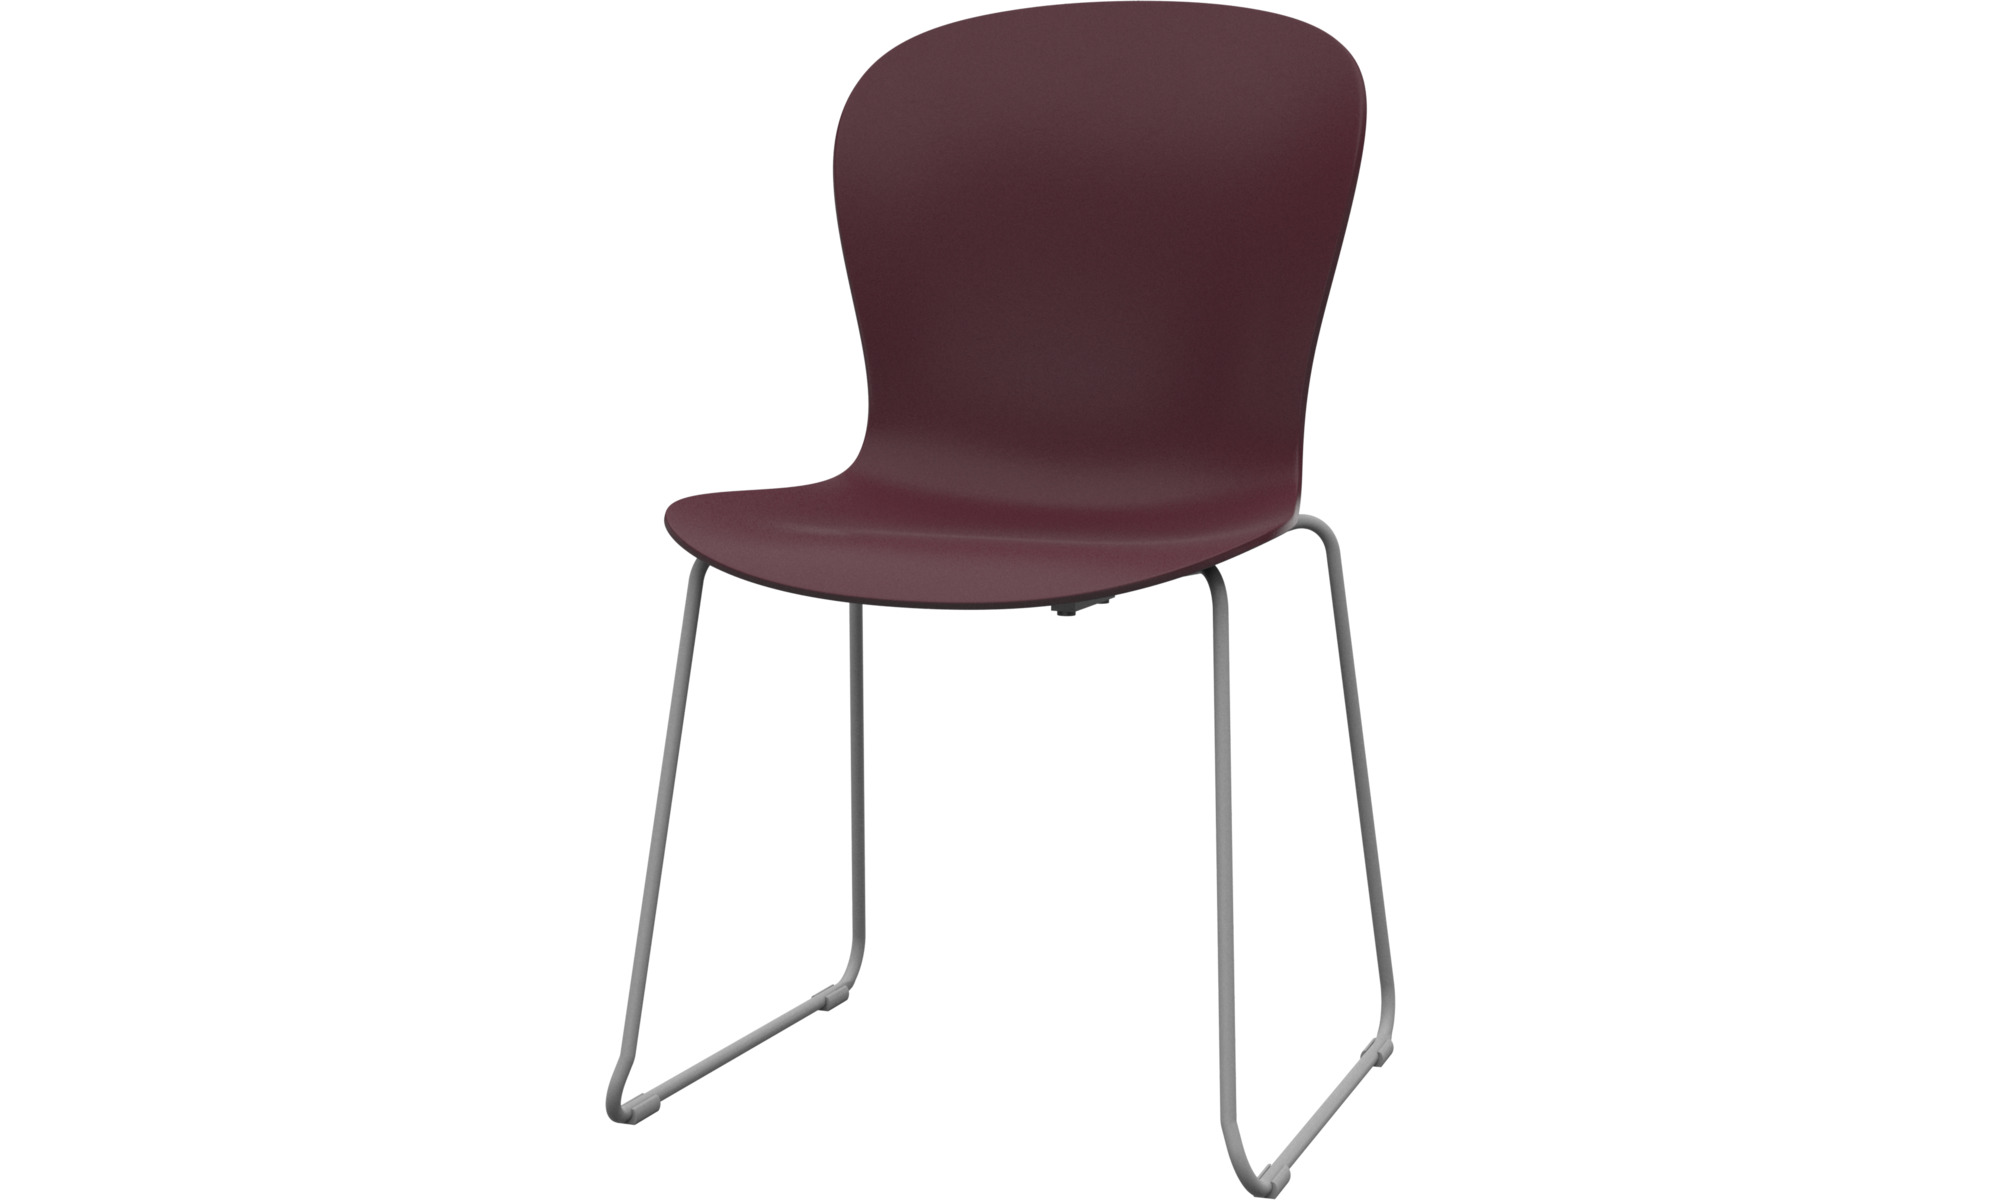 Dining chairs - Adelaide chair (for in and outdoor use) - Red - Plastic